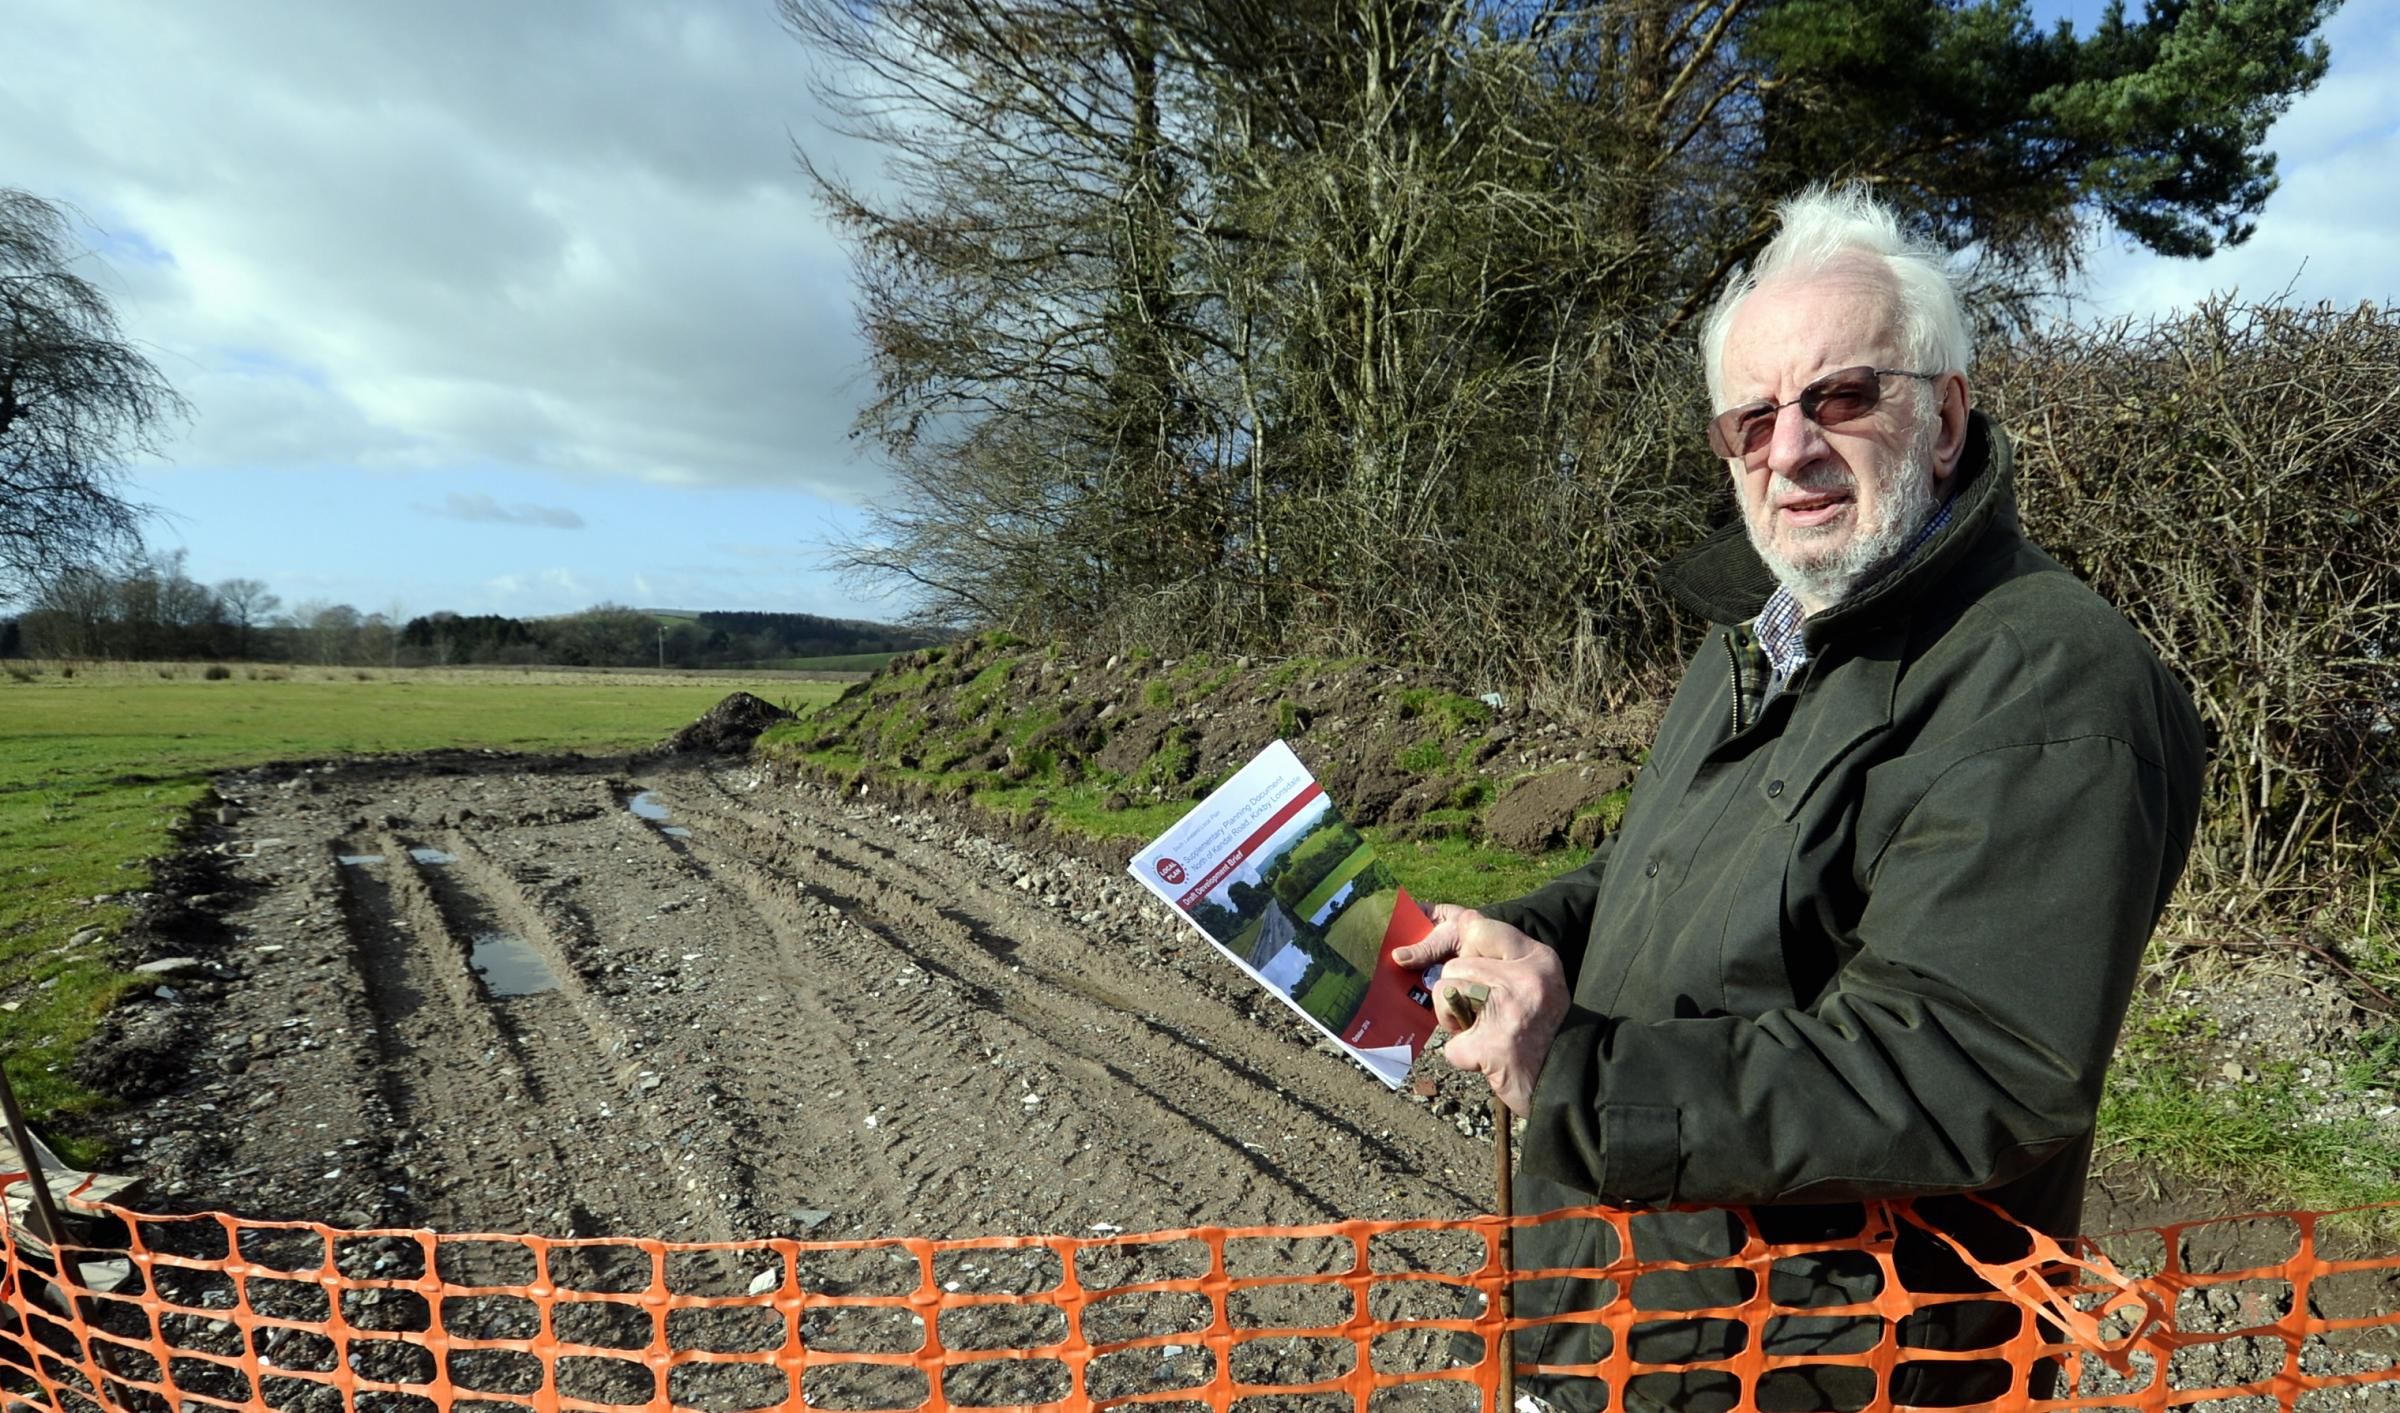 Councillor Allan Muirhead at land near St Mary's Primary School  Kirkby Lonsdale where there is a proposal to build 78 dwellings.